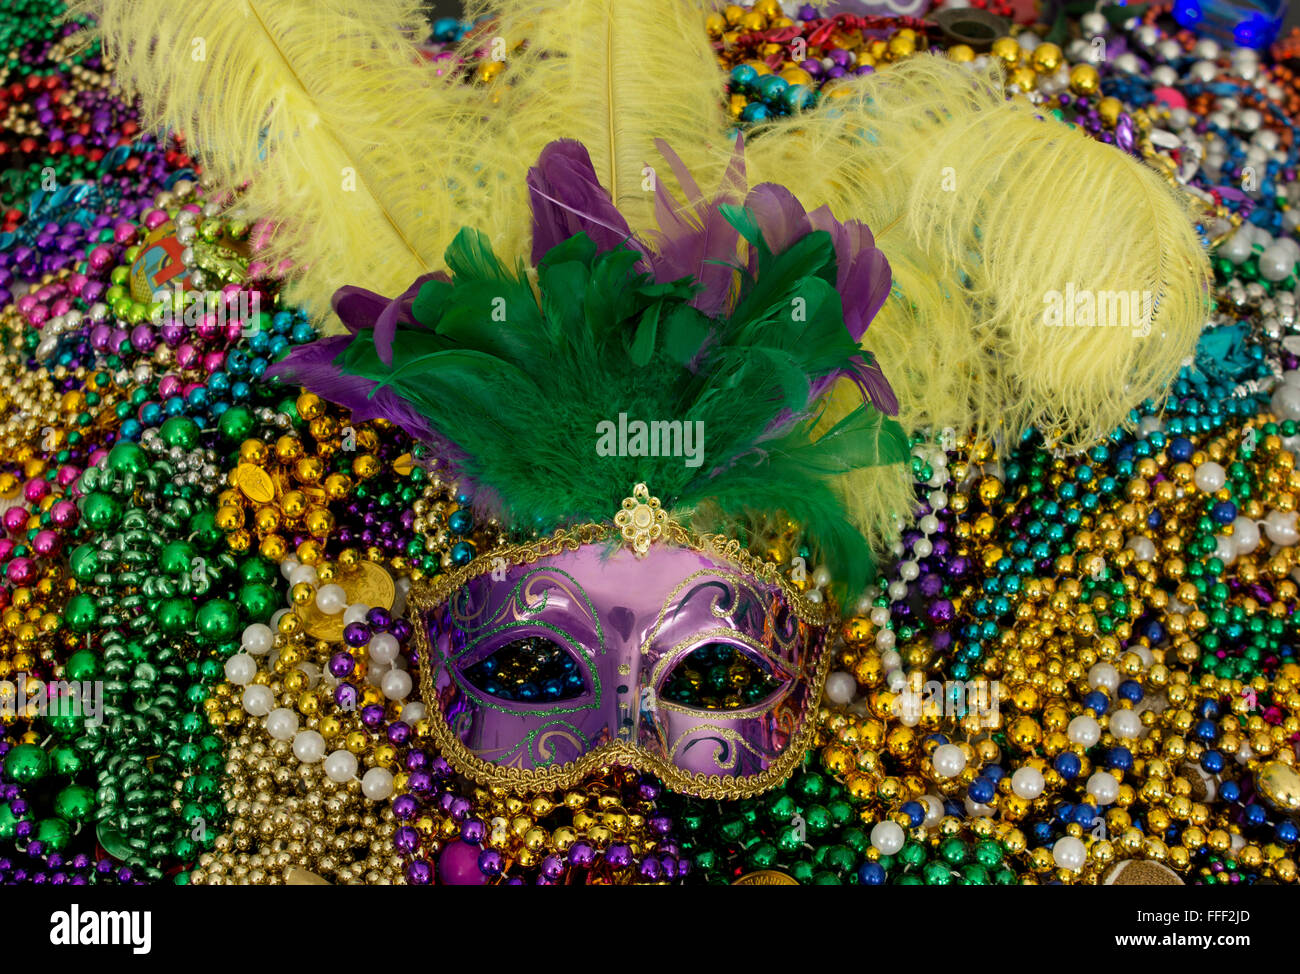 fleur lis beads necklace de carnival baroque mask